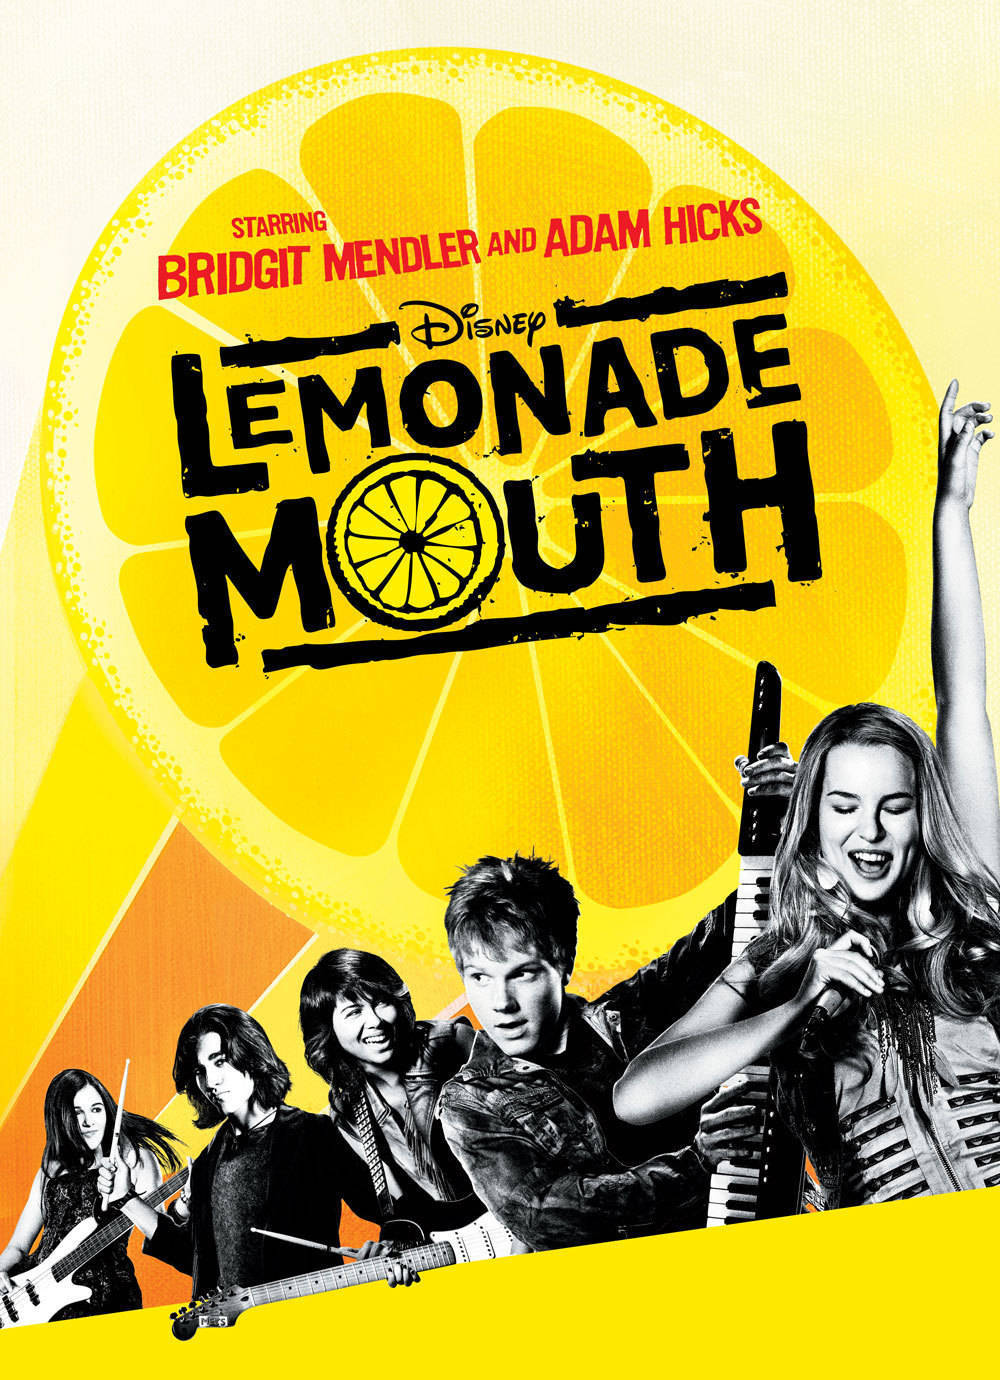 c4536f0d81fbfbe7fe99_Lemonade_Mouth.jpeg